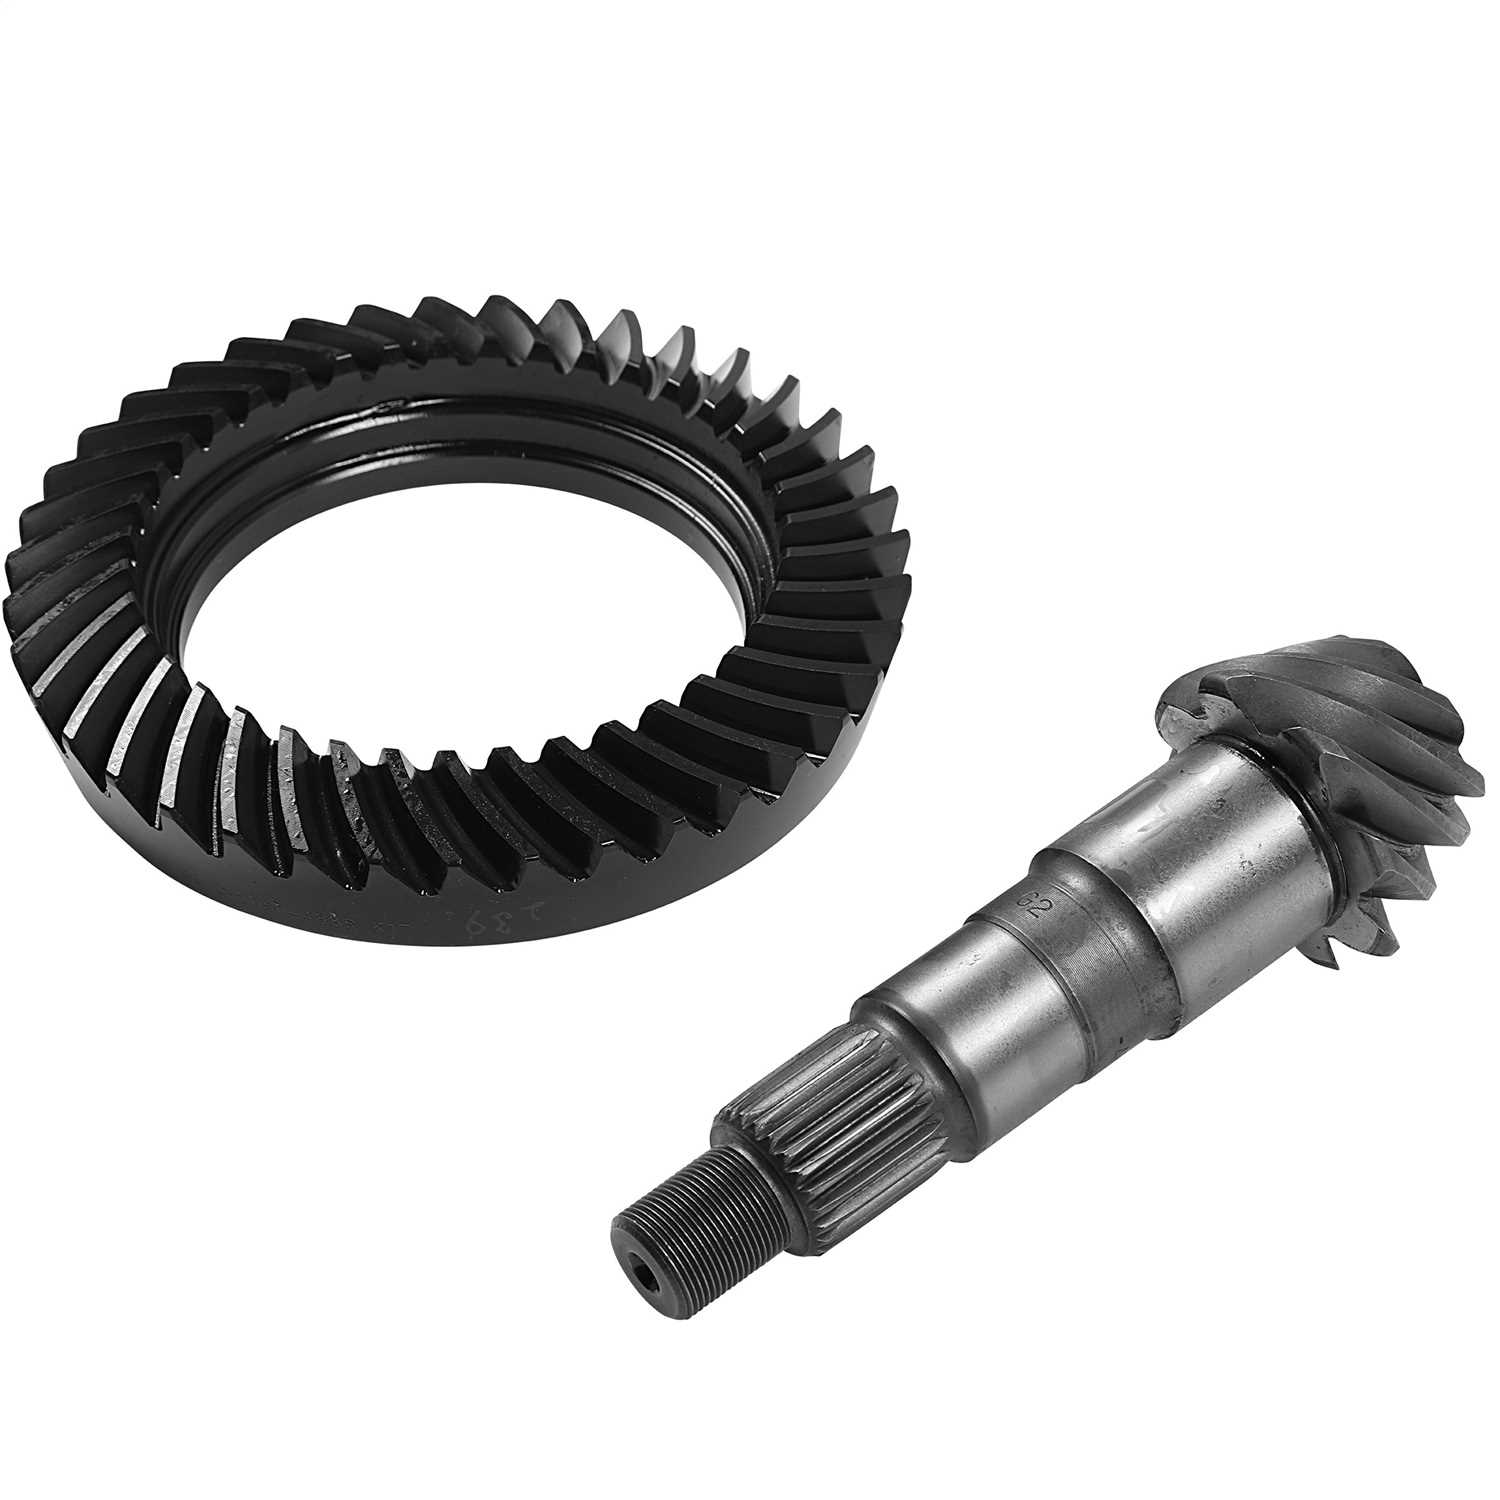 1-2050-513R G2 Axle and Gear Ring and Pinion Set